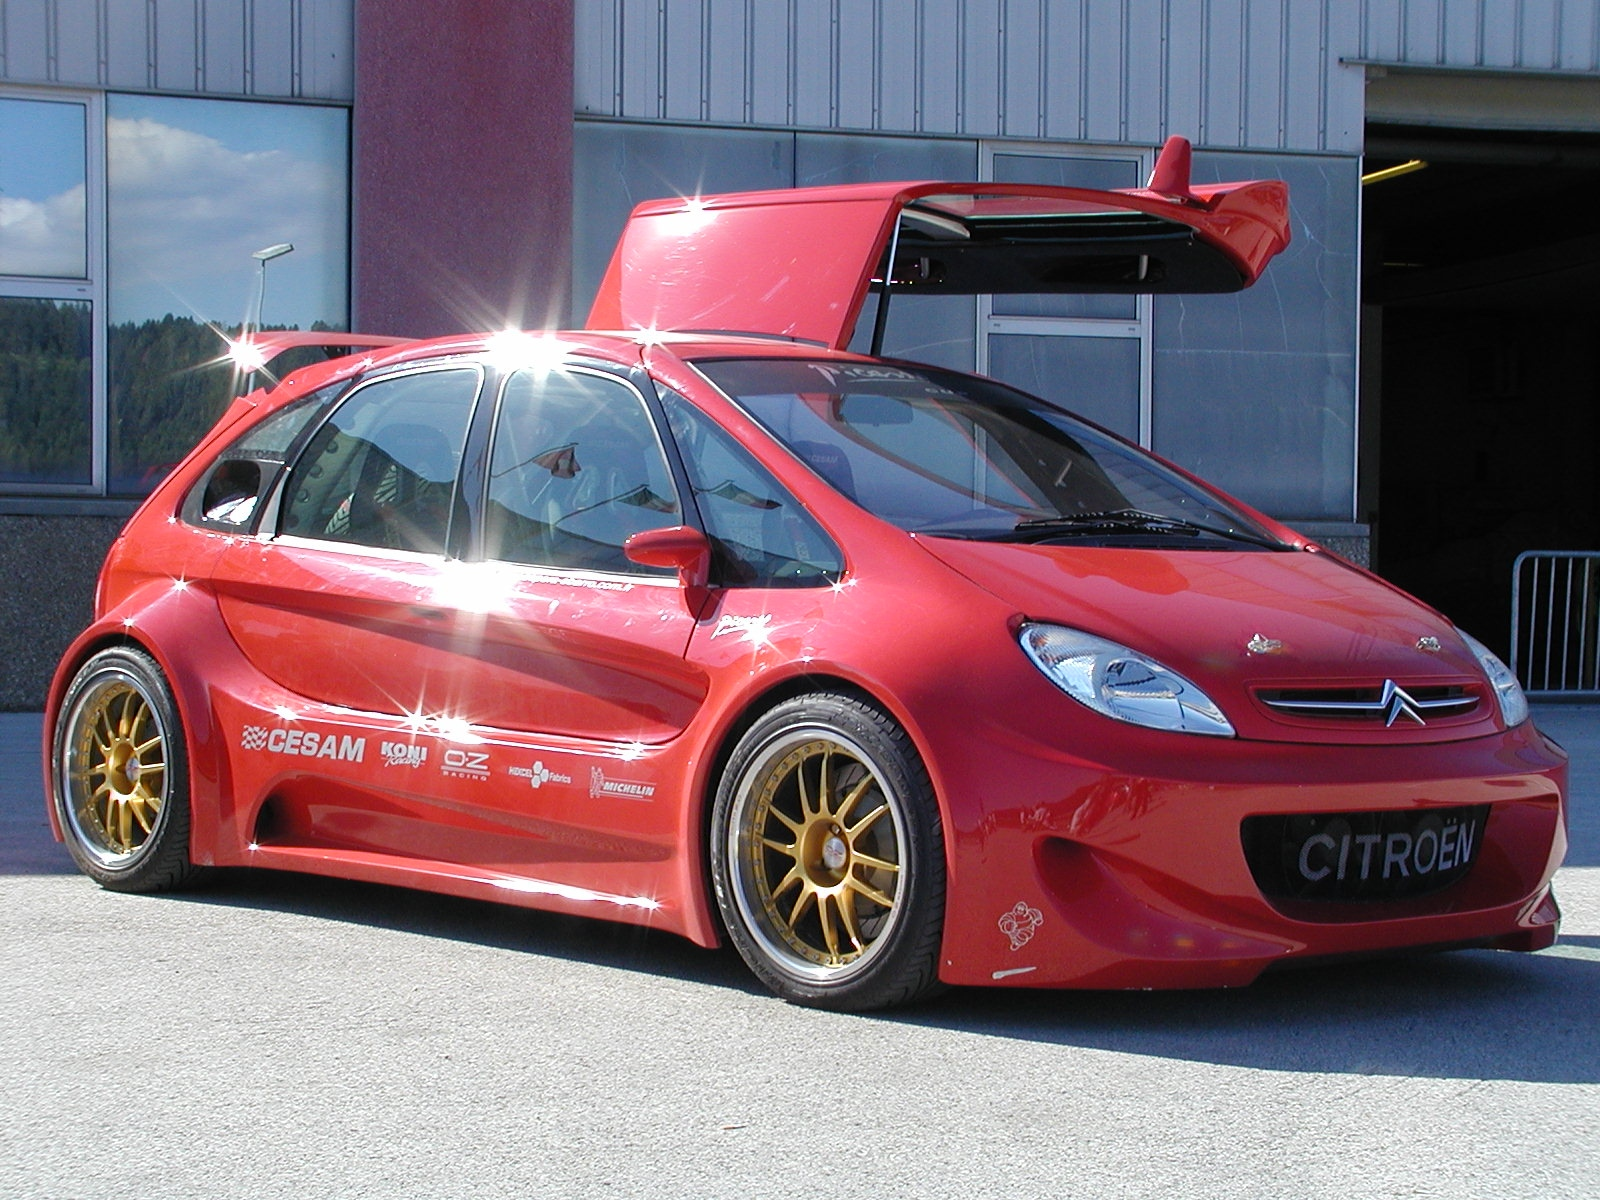 Voitures tuning page 9 - Voiture tuning images ...